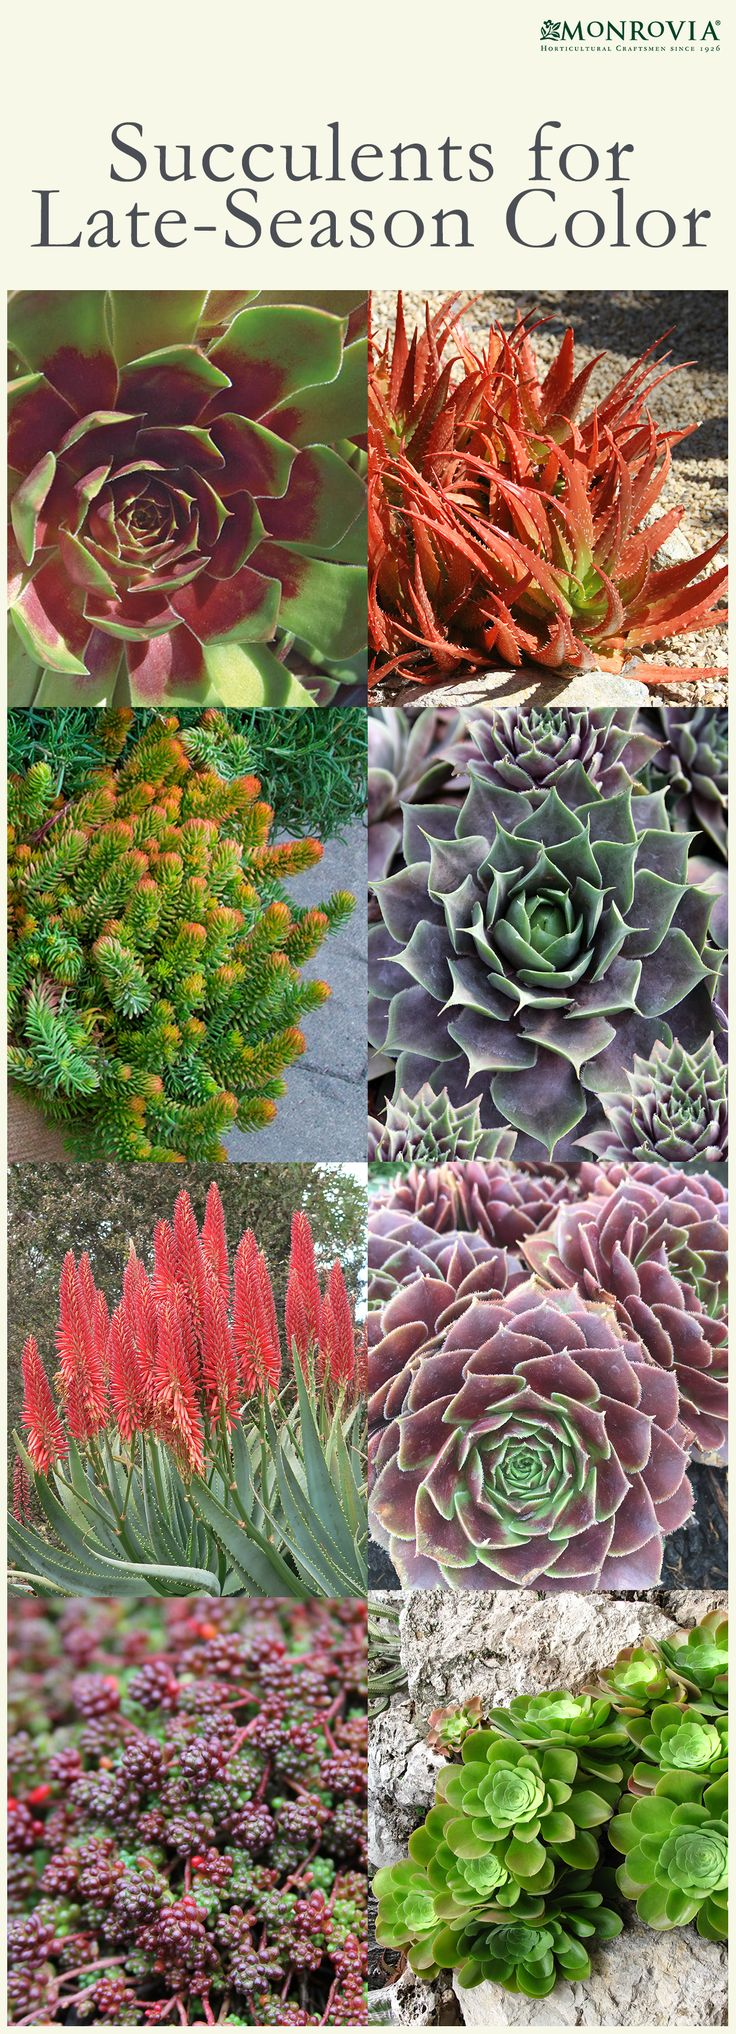 Succulents for Late-Season Color. Succulents have become stars of the  summer garden world